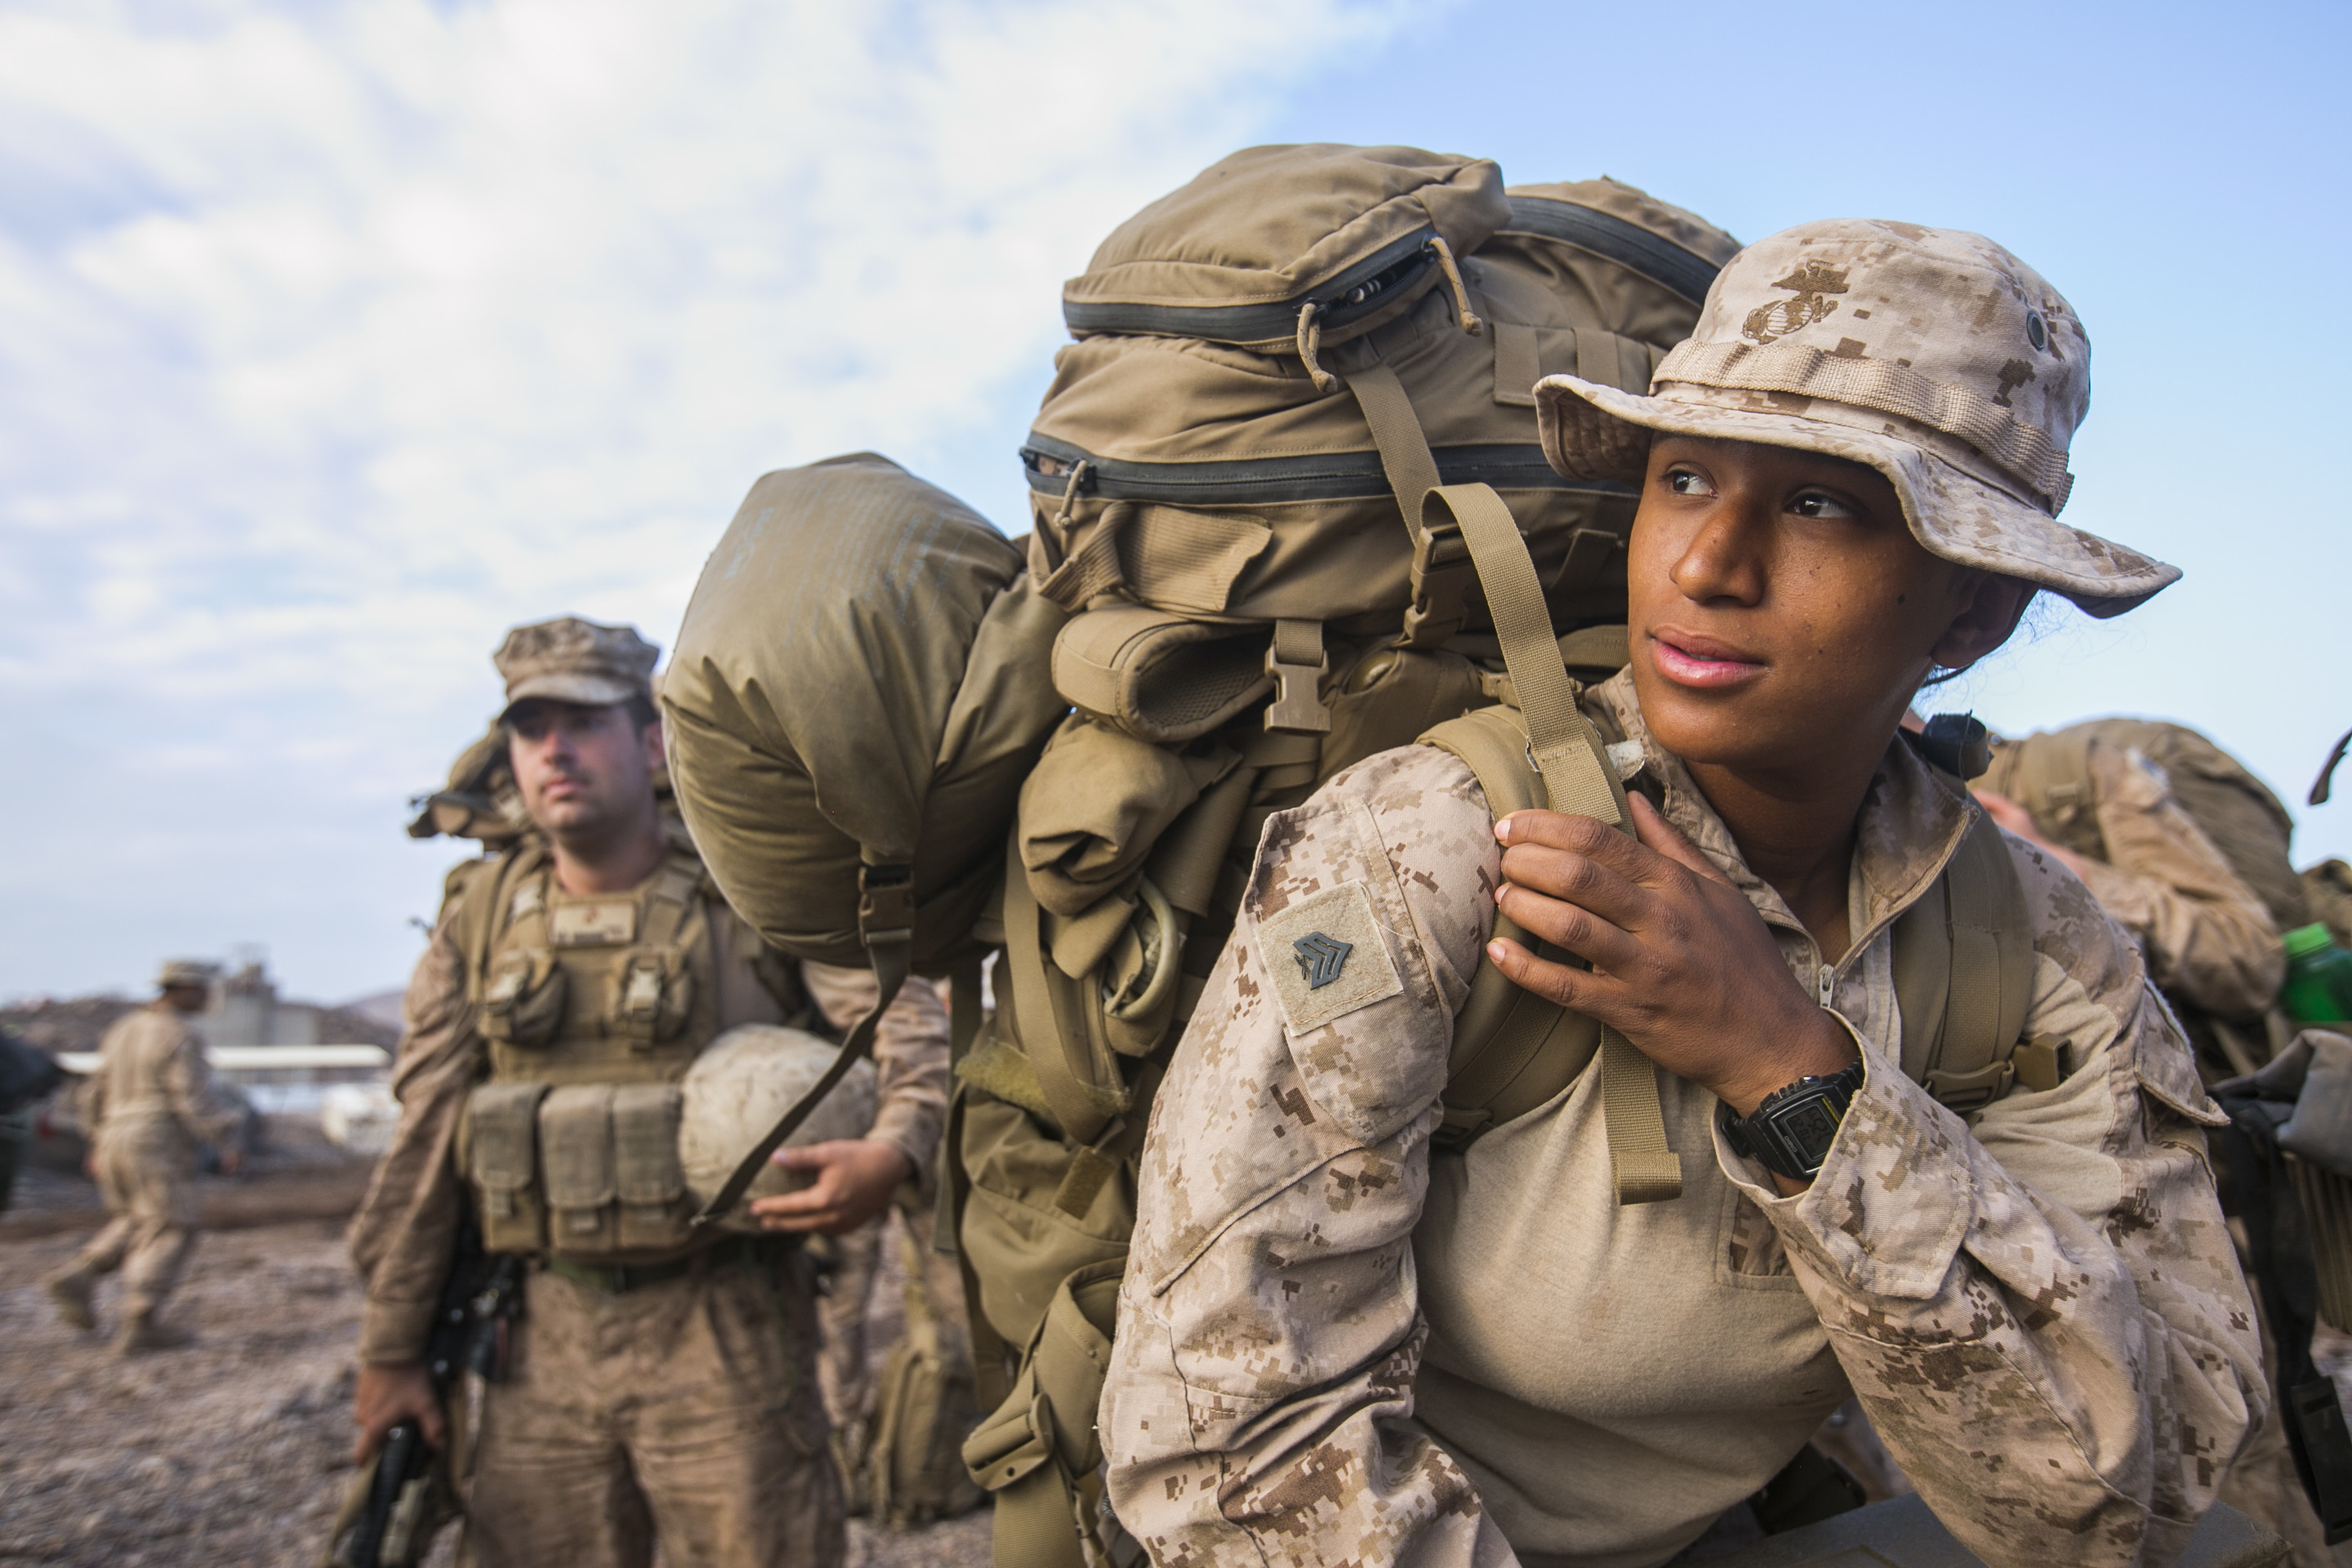 ARTA BEACH, Djibouti (Dec. 20, 2016) U.S. Marine Corps Sgt. Summer Forcier, an ammunition technician with Combat logistics Battalion 11, 11th Marine Expeditionary Unit (MEU), dons her pack and prepares to embark a landing craft utility during exercise Alligator Dagger at Arta Beach, Djibouti, Dec. 20. The unilateral exercise provides an opportunity for the Makin Island Amphibious Ready Group and 11th MEU to train in amphibious operations within the U.S. 5th Fleet area of operations. The 11th MEU is currently supporting U.S. 5th Fleet's mission to promote and maintain stability and security in the region. (U.S. Marine Corps photo by Sgt. Xzavior T. McNeal)